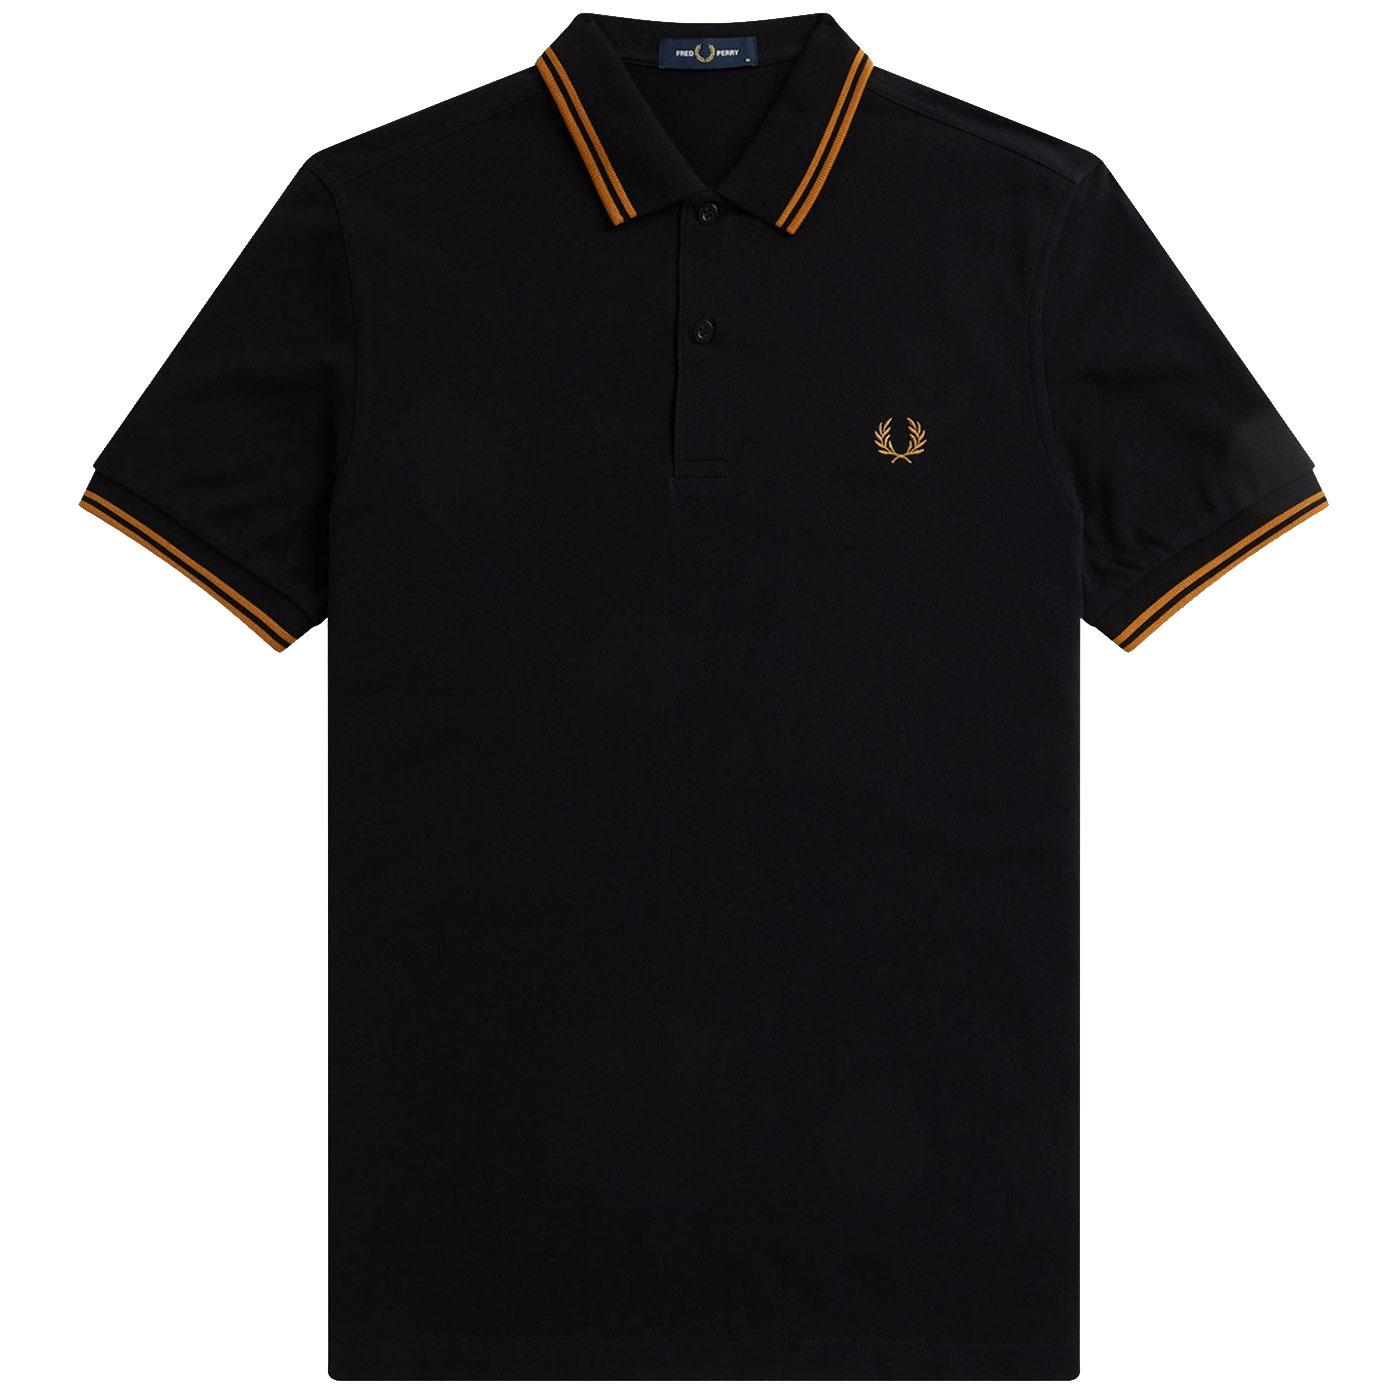 FRED PERRY M3600 Twin Tipped Mod Polo Shirt B/DC